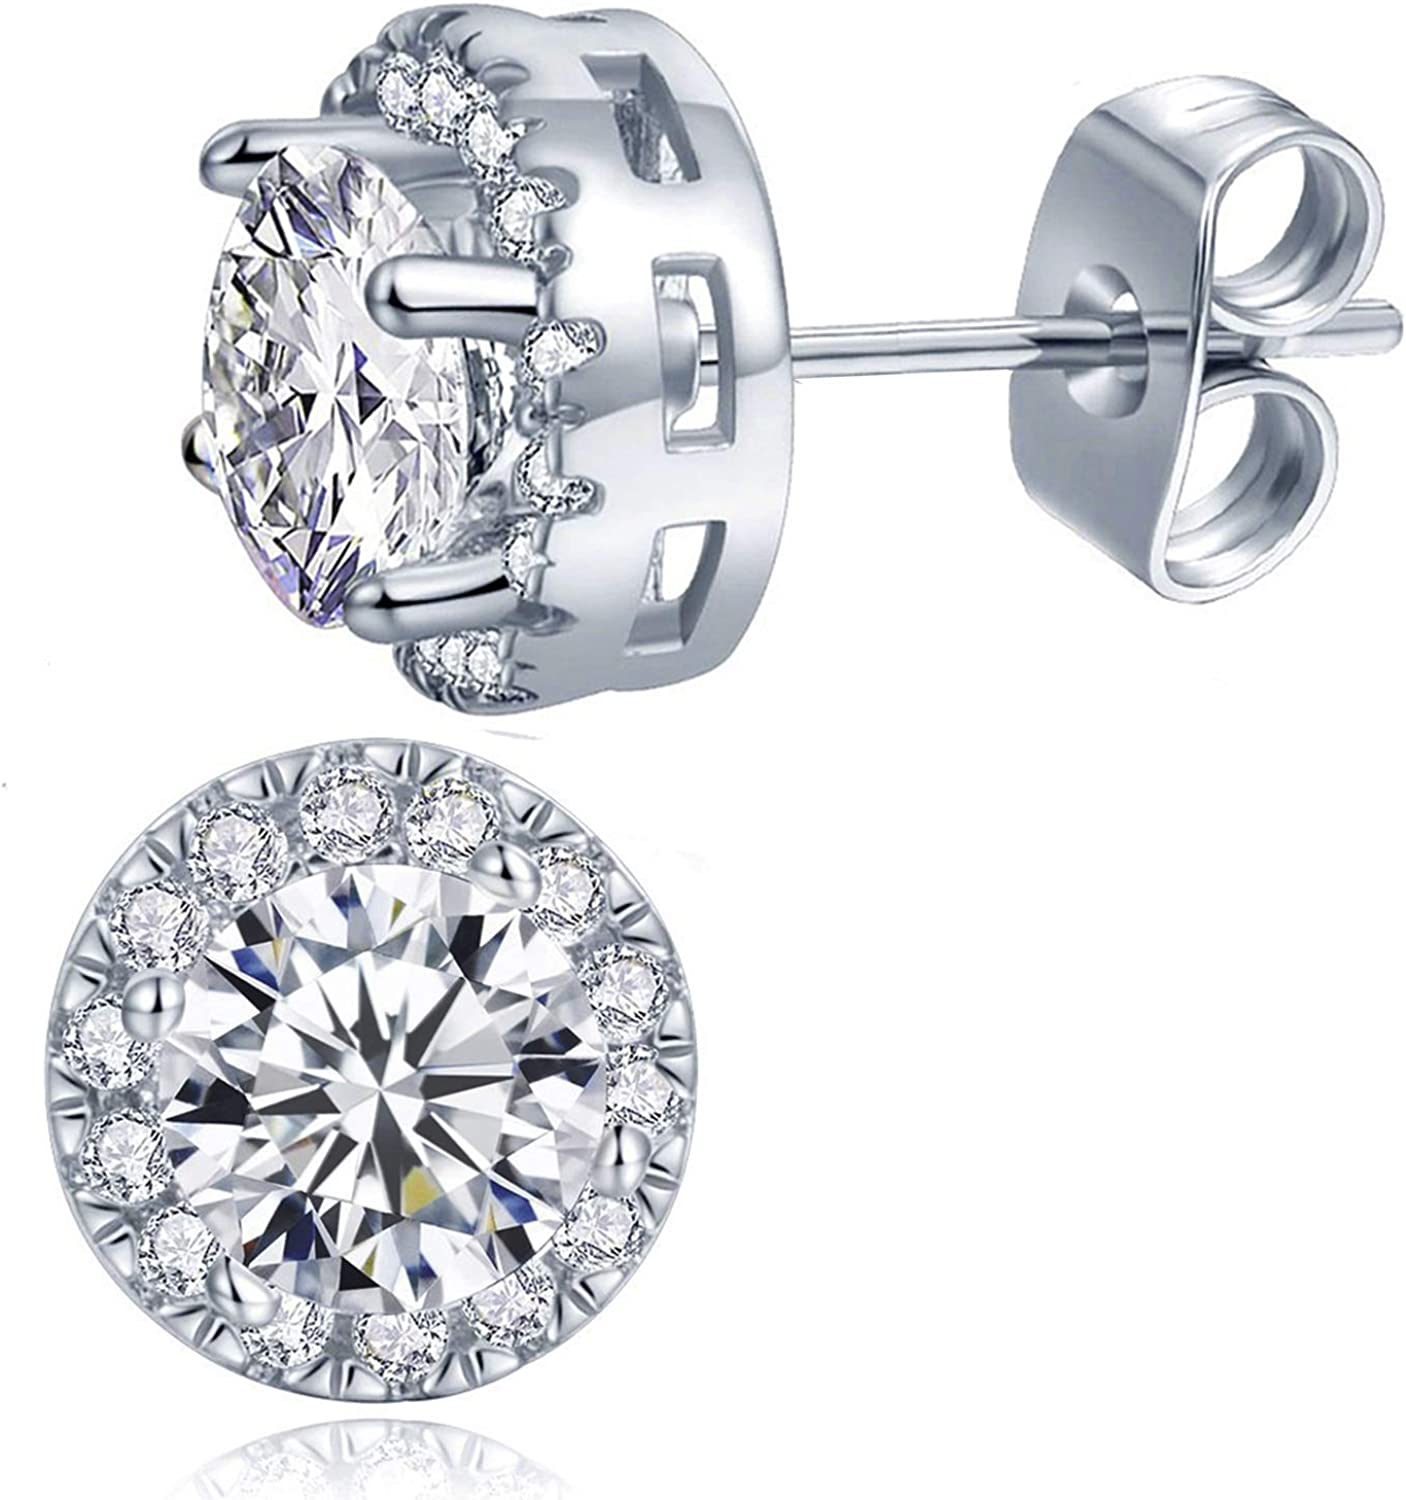 Cubic Zirconia Halo Stud Earrings Gold Plated Hypoallergenic